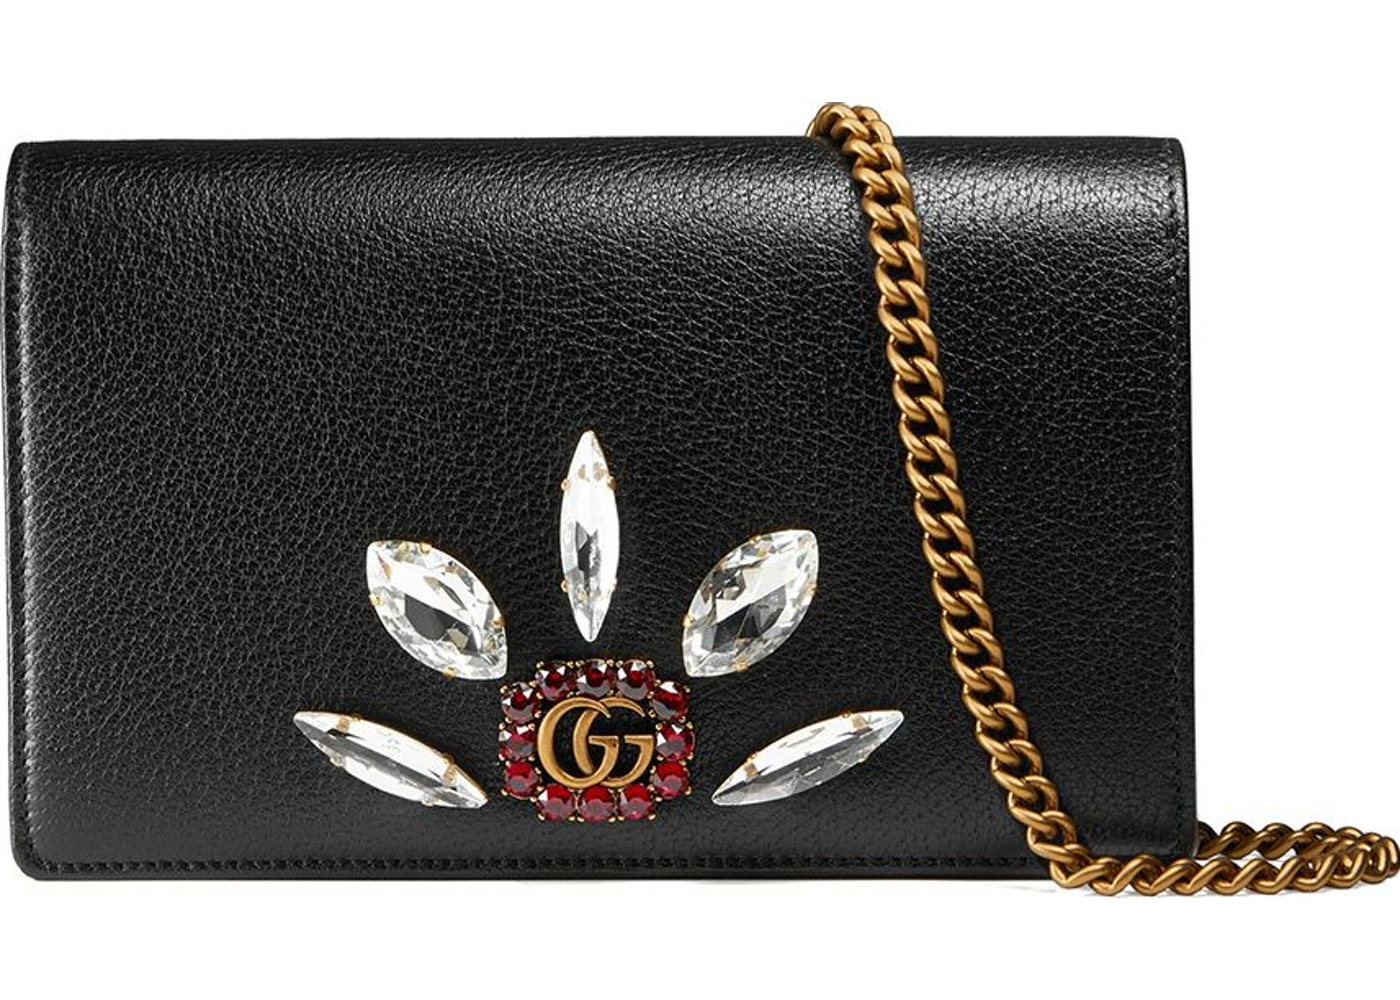 abeed801c96 Gucci Chain Crossbody Leather Crystals Mini Black. Leather Crystals Mini  Black